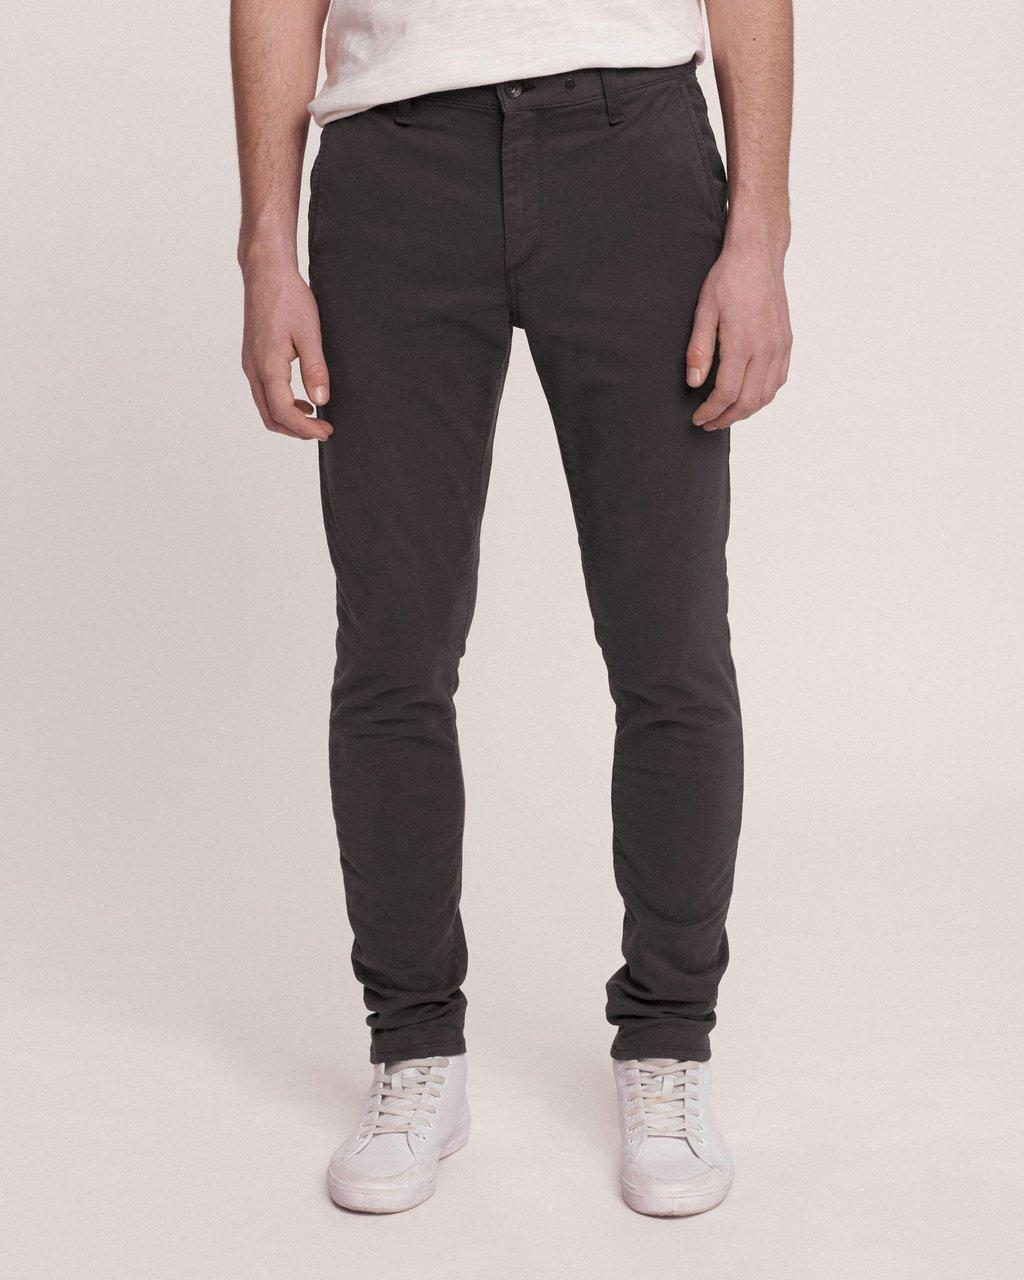 FIT 1 CLASSIC CHINO